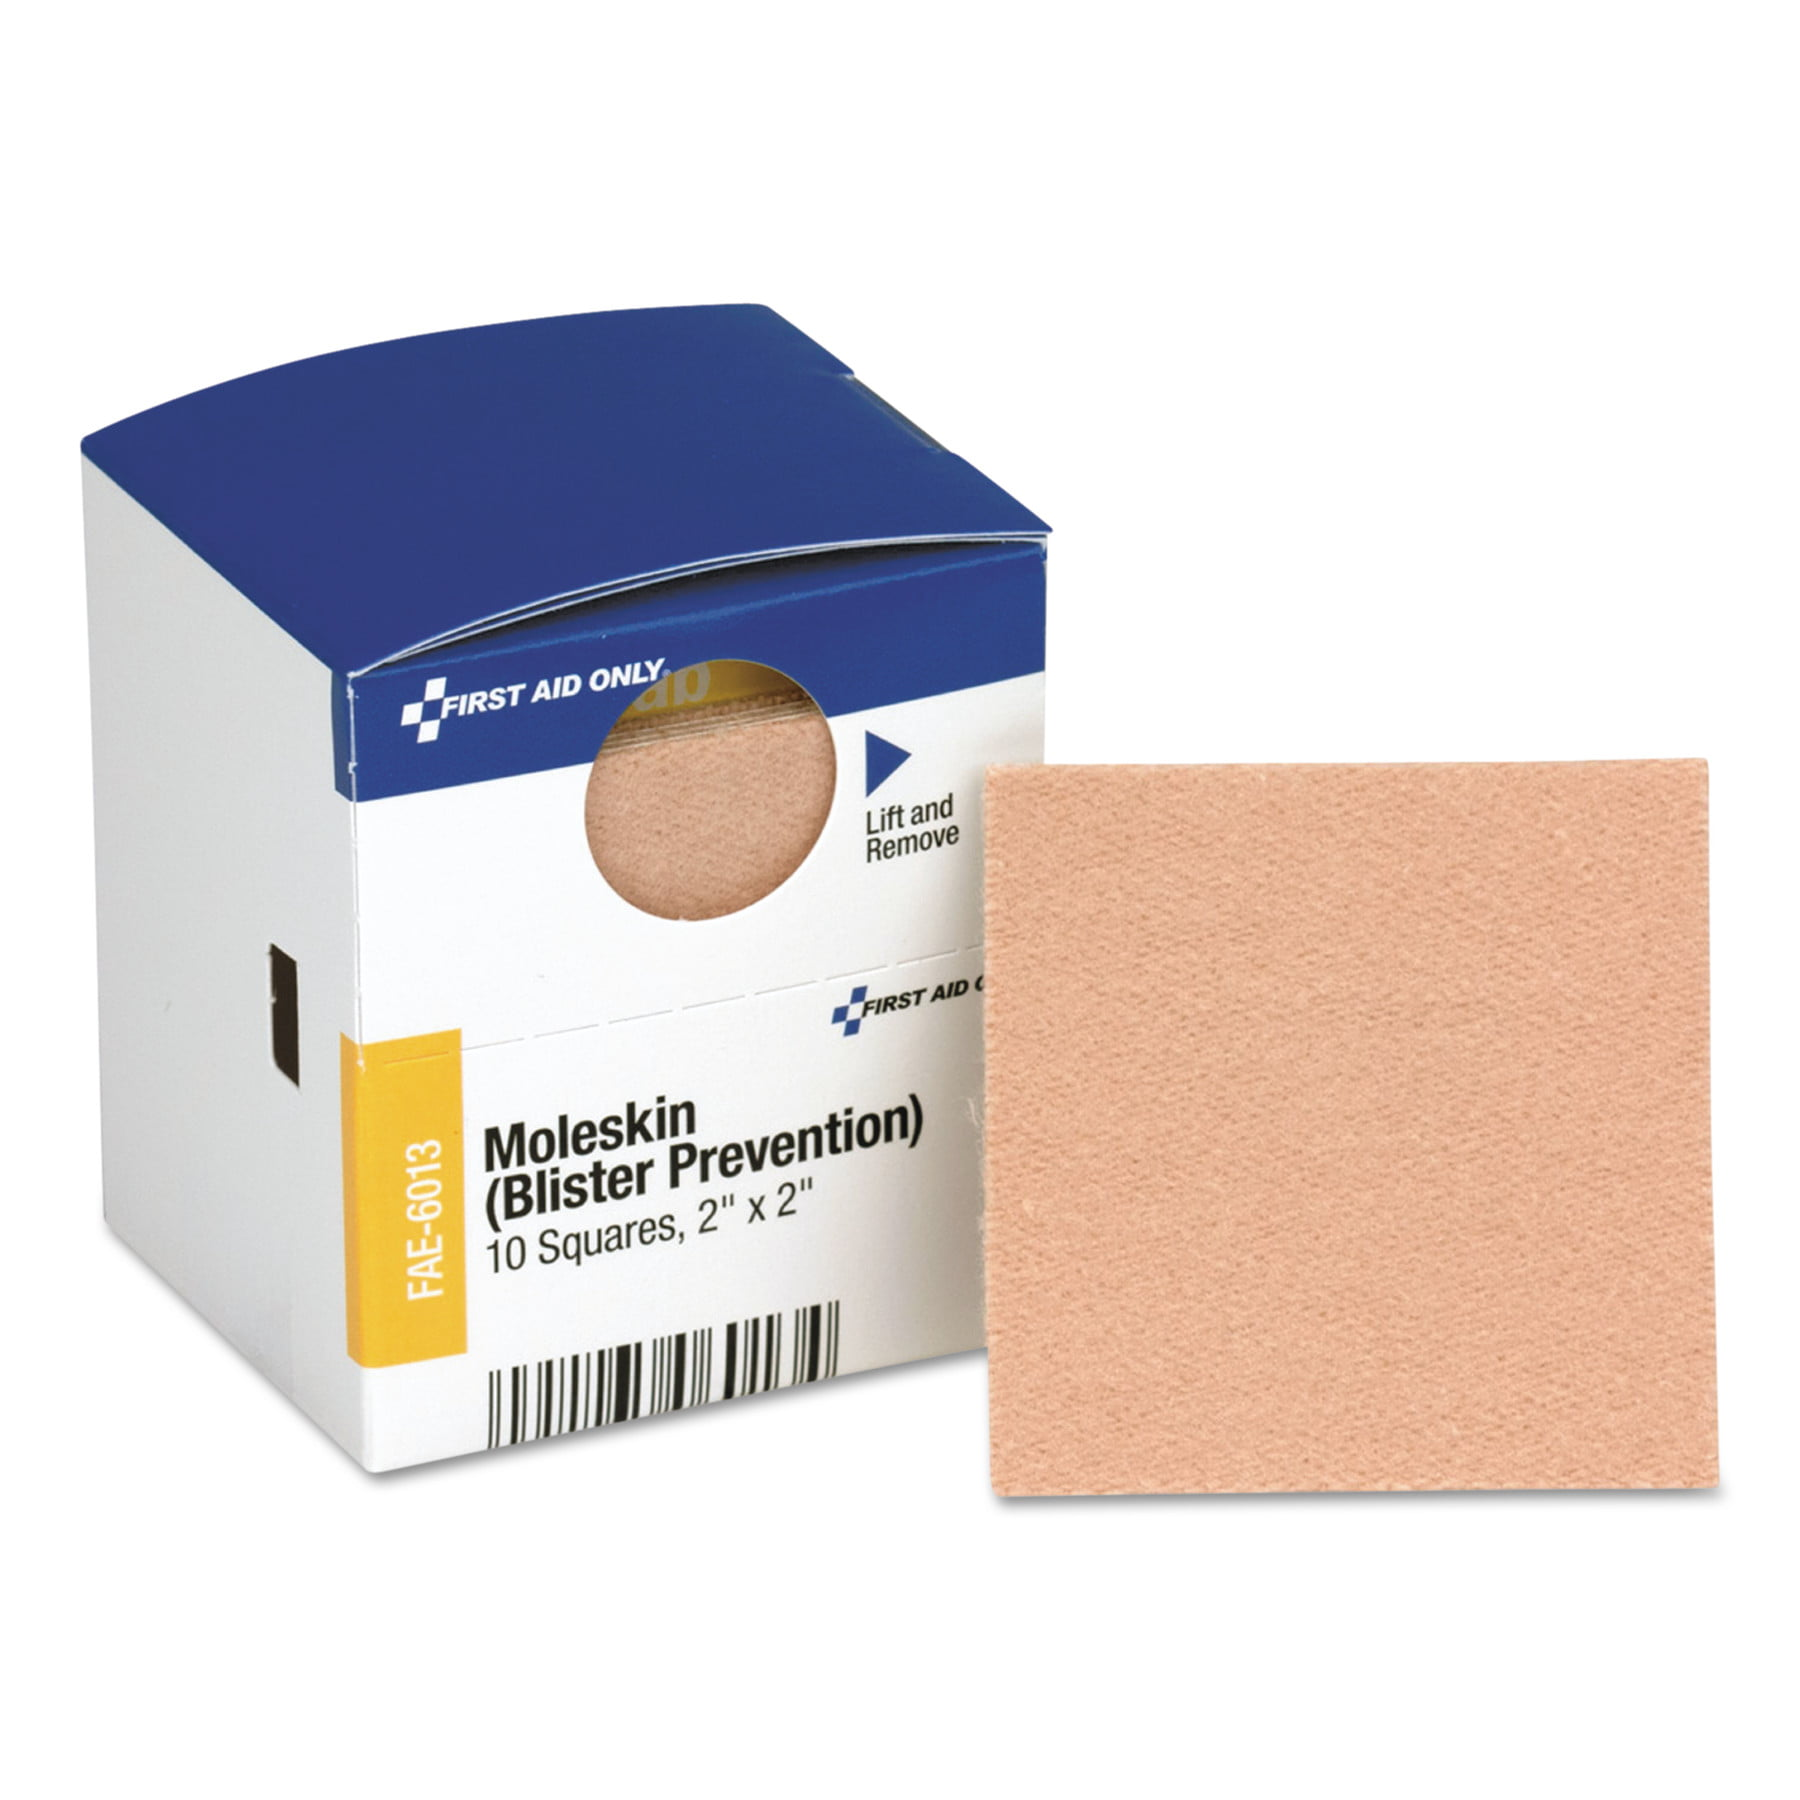 """First Aid Only Moleskin Blister Protection, 2"""" Squares, 10 Box by FIRST AID ONLY, INC."""